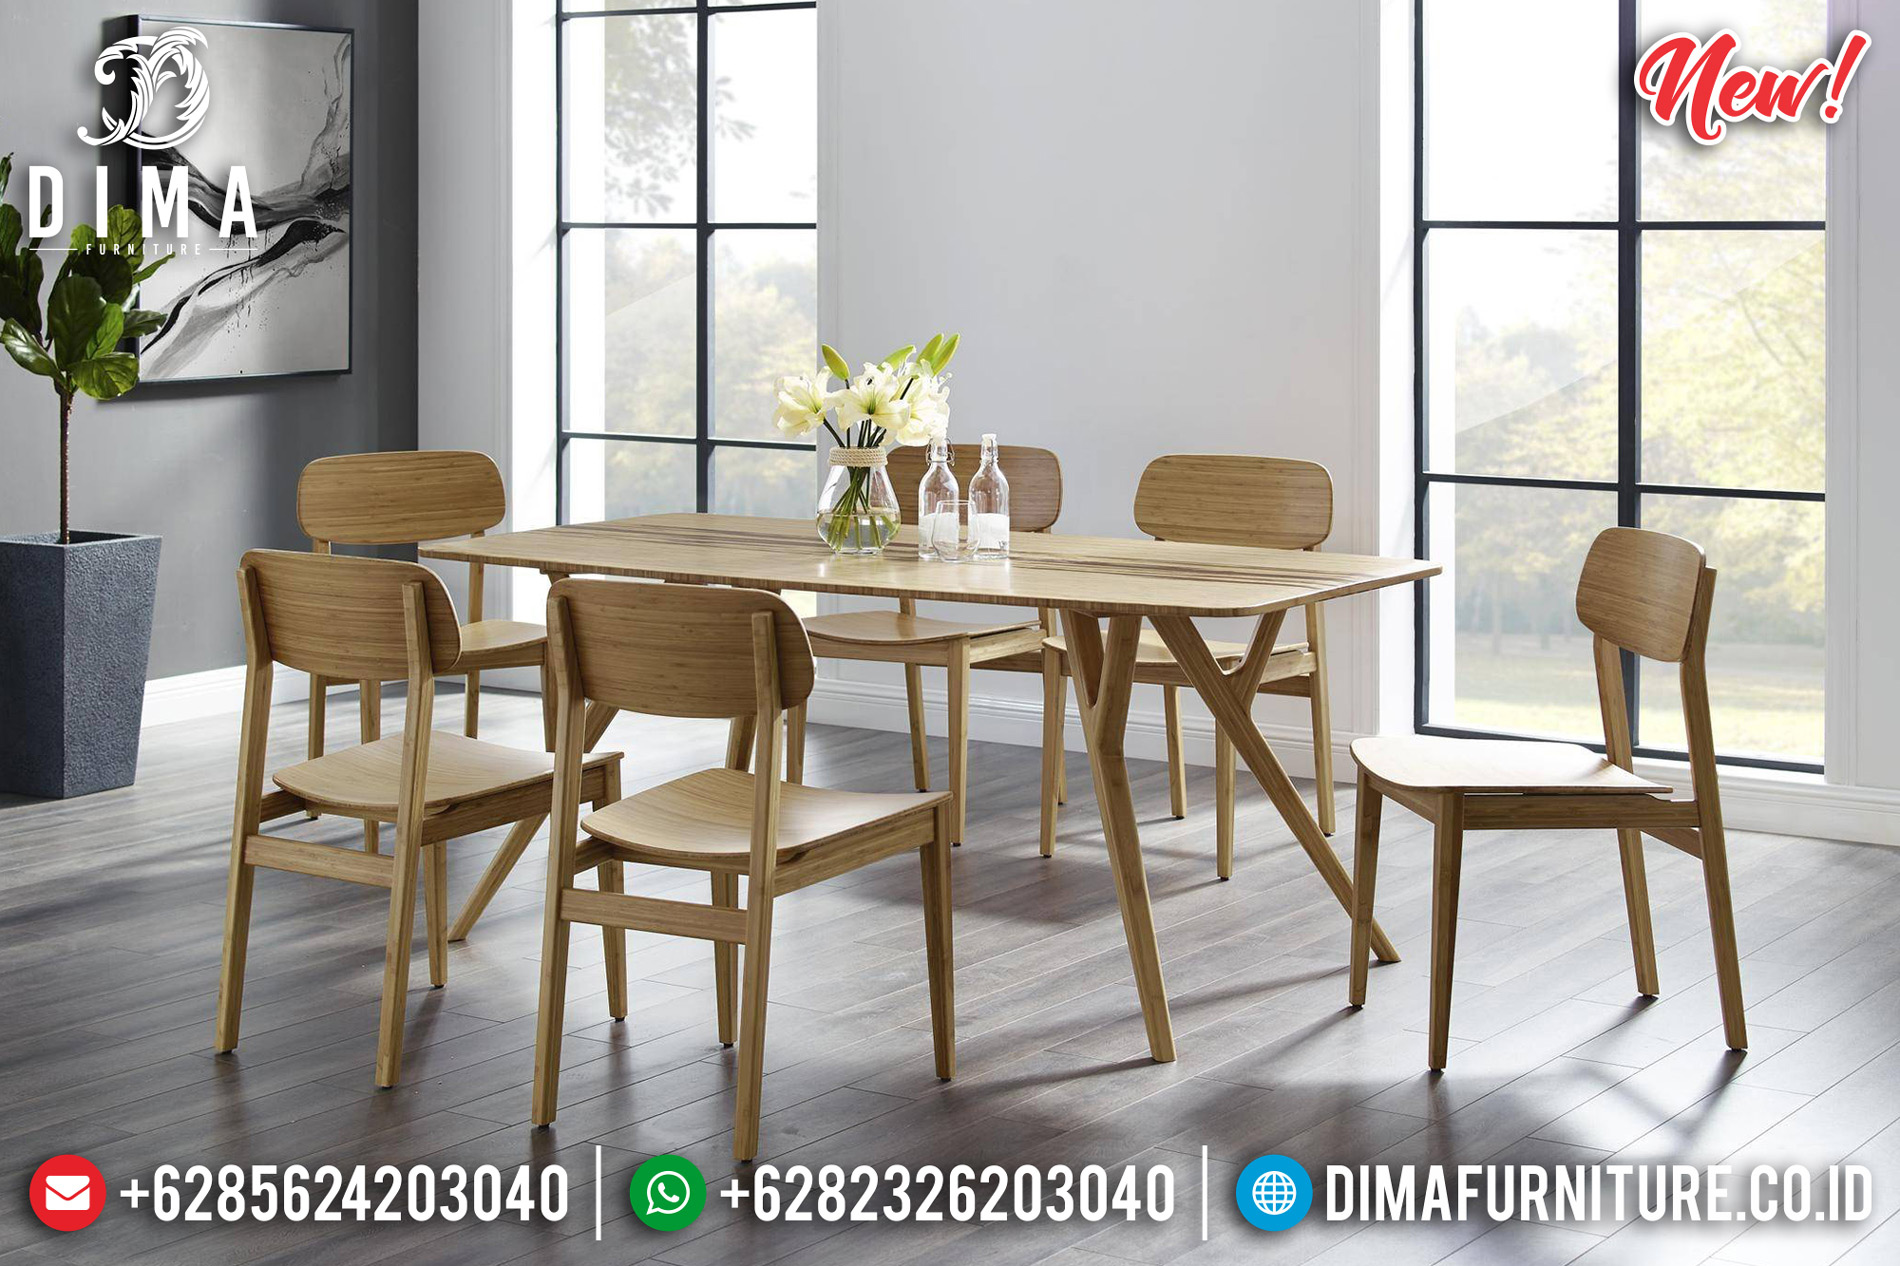 Meja Makan Minimalis Jati Back To Nature Concept Natural Color St-1226